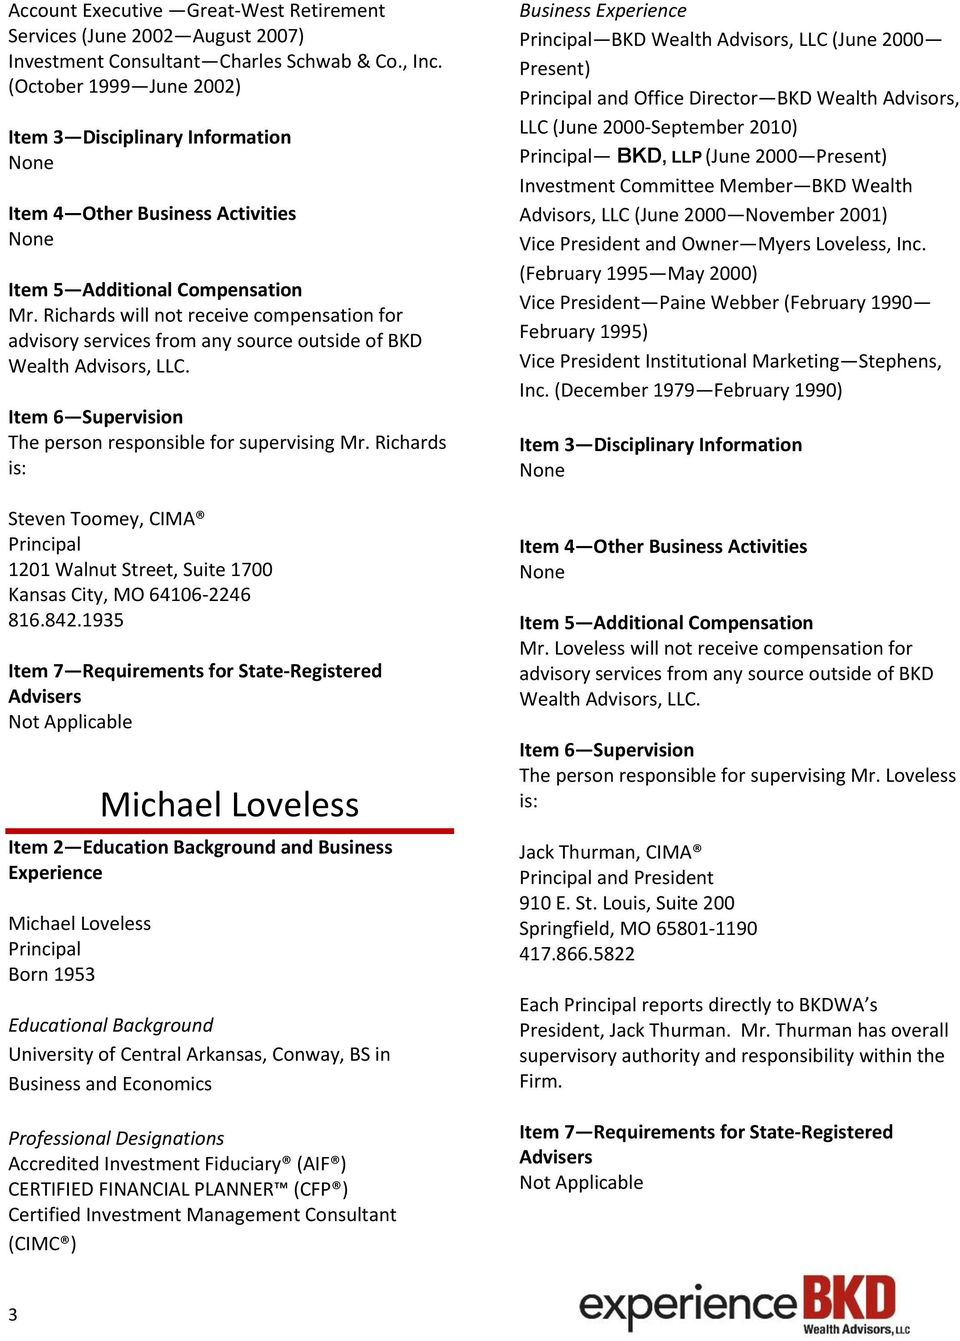 1935 Michael Loveless Michael Loveless Principal Born 1953 University of Central Arkansas, Conway, BS in Business and Economics Accredited Investment Fiduciary (AIF ) CERTIFIED FINANCIAL PLANNER (CFP